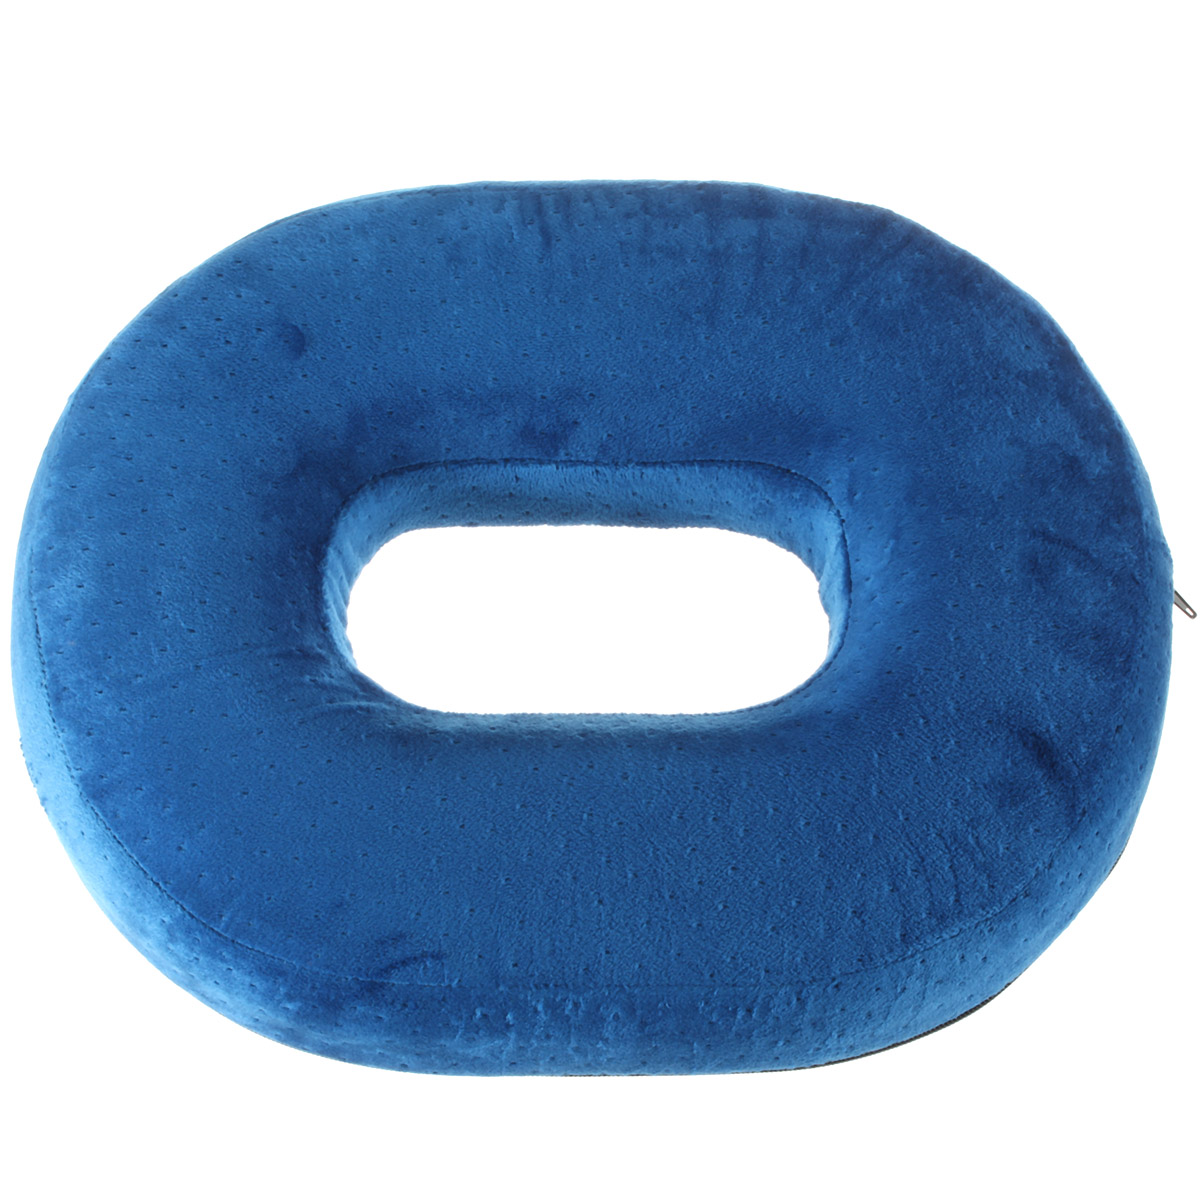 1 Pc Pain Relief Ring Home Office Car Chair Seat Cushion Memory Sponge Foam Comfort Donut Pillow Back Support